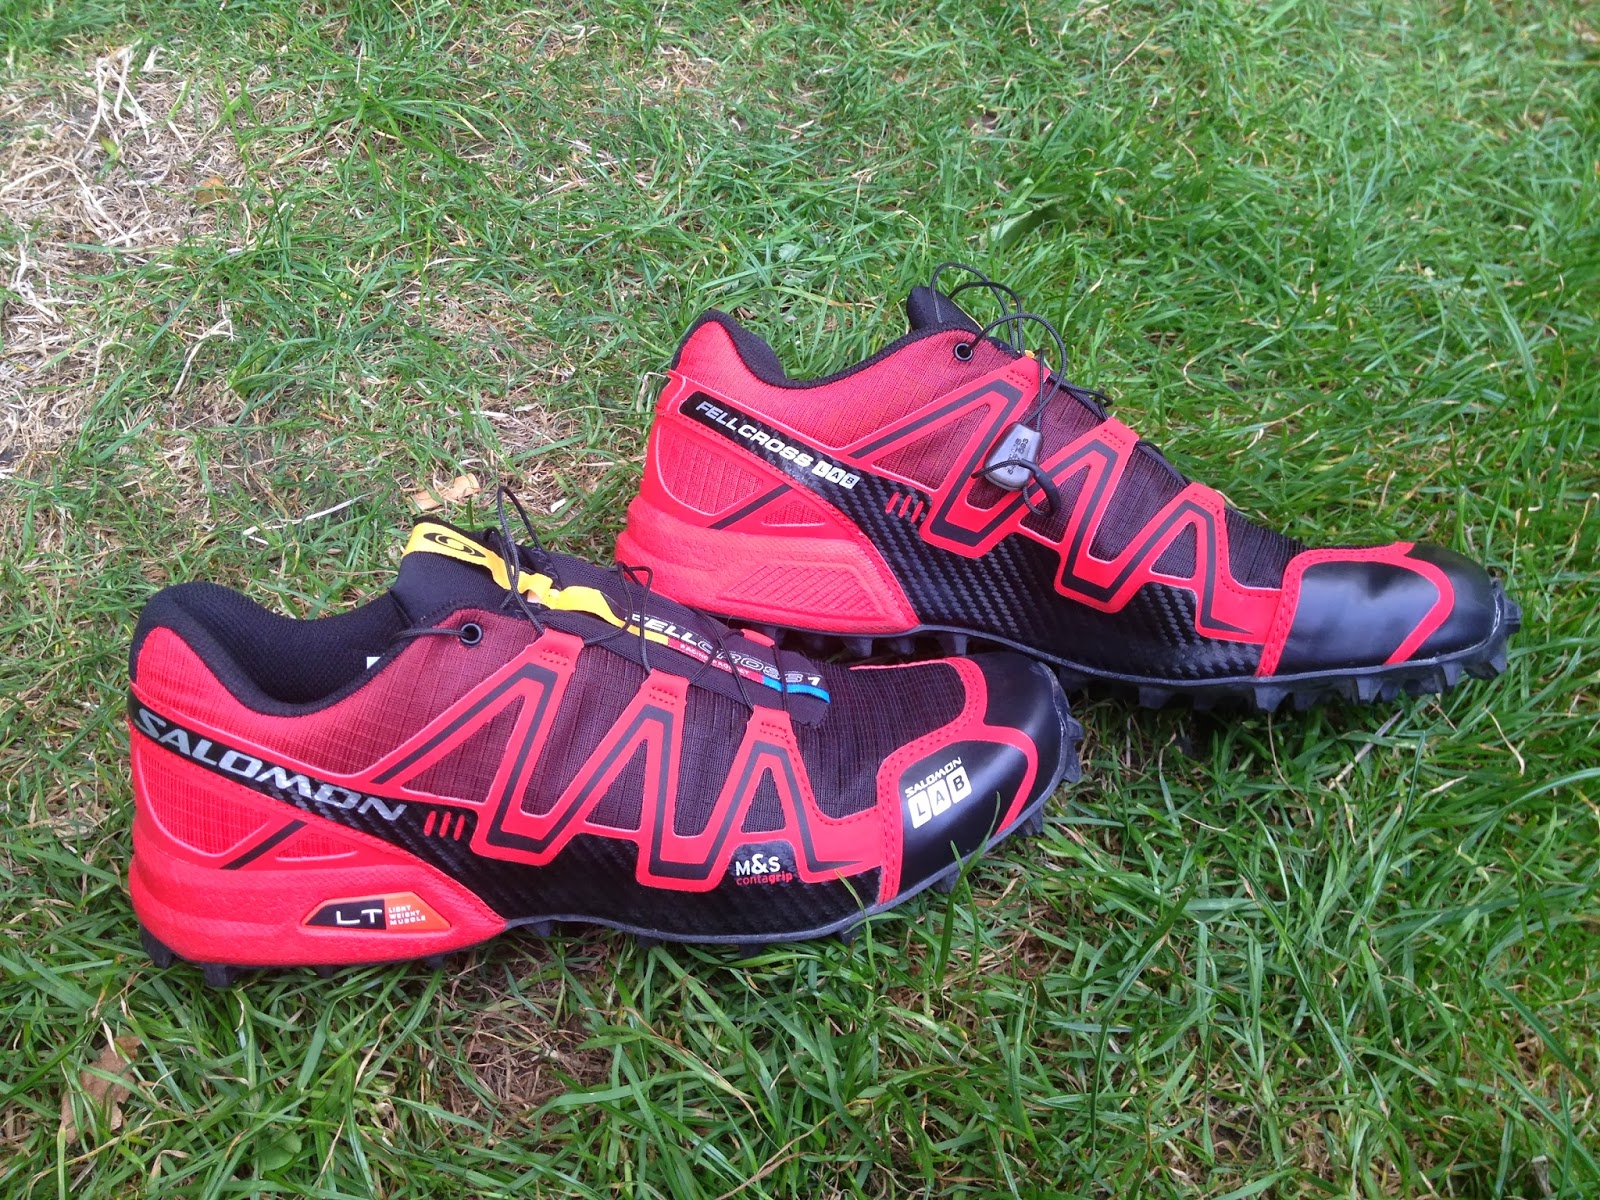 competitive price cc98d 7fe25 Showing off the colours and tough upper materials of the S-Lab Fellcross 1